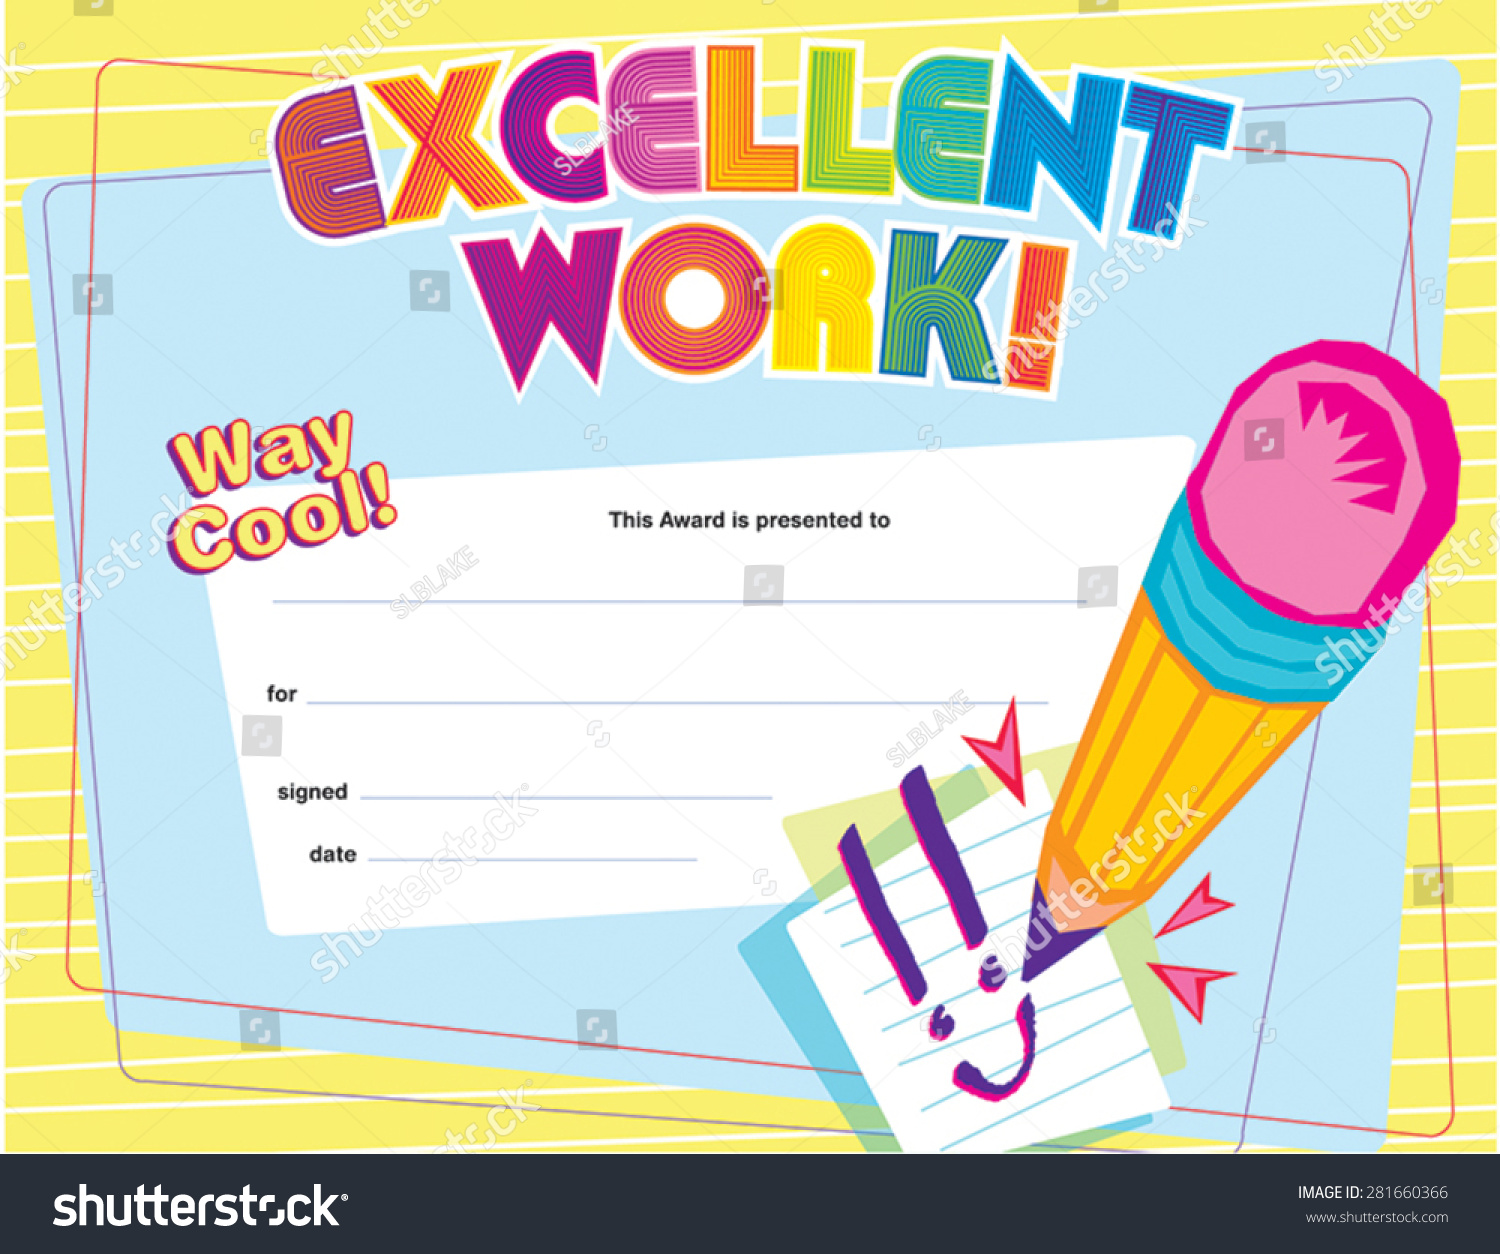 Excellent Work Certificate Stock Vector Royalty Free 281660366